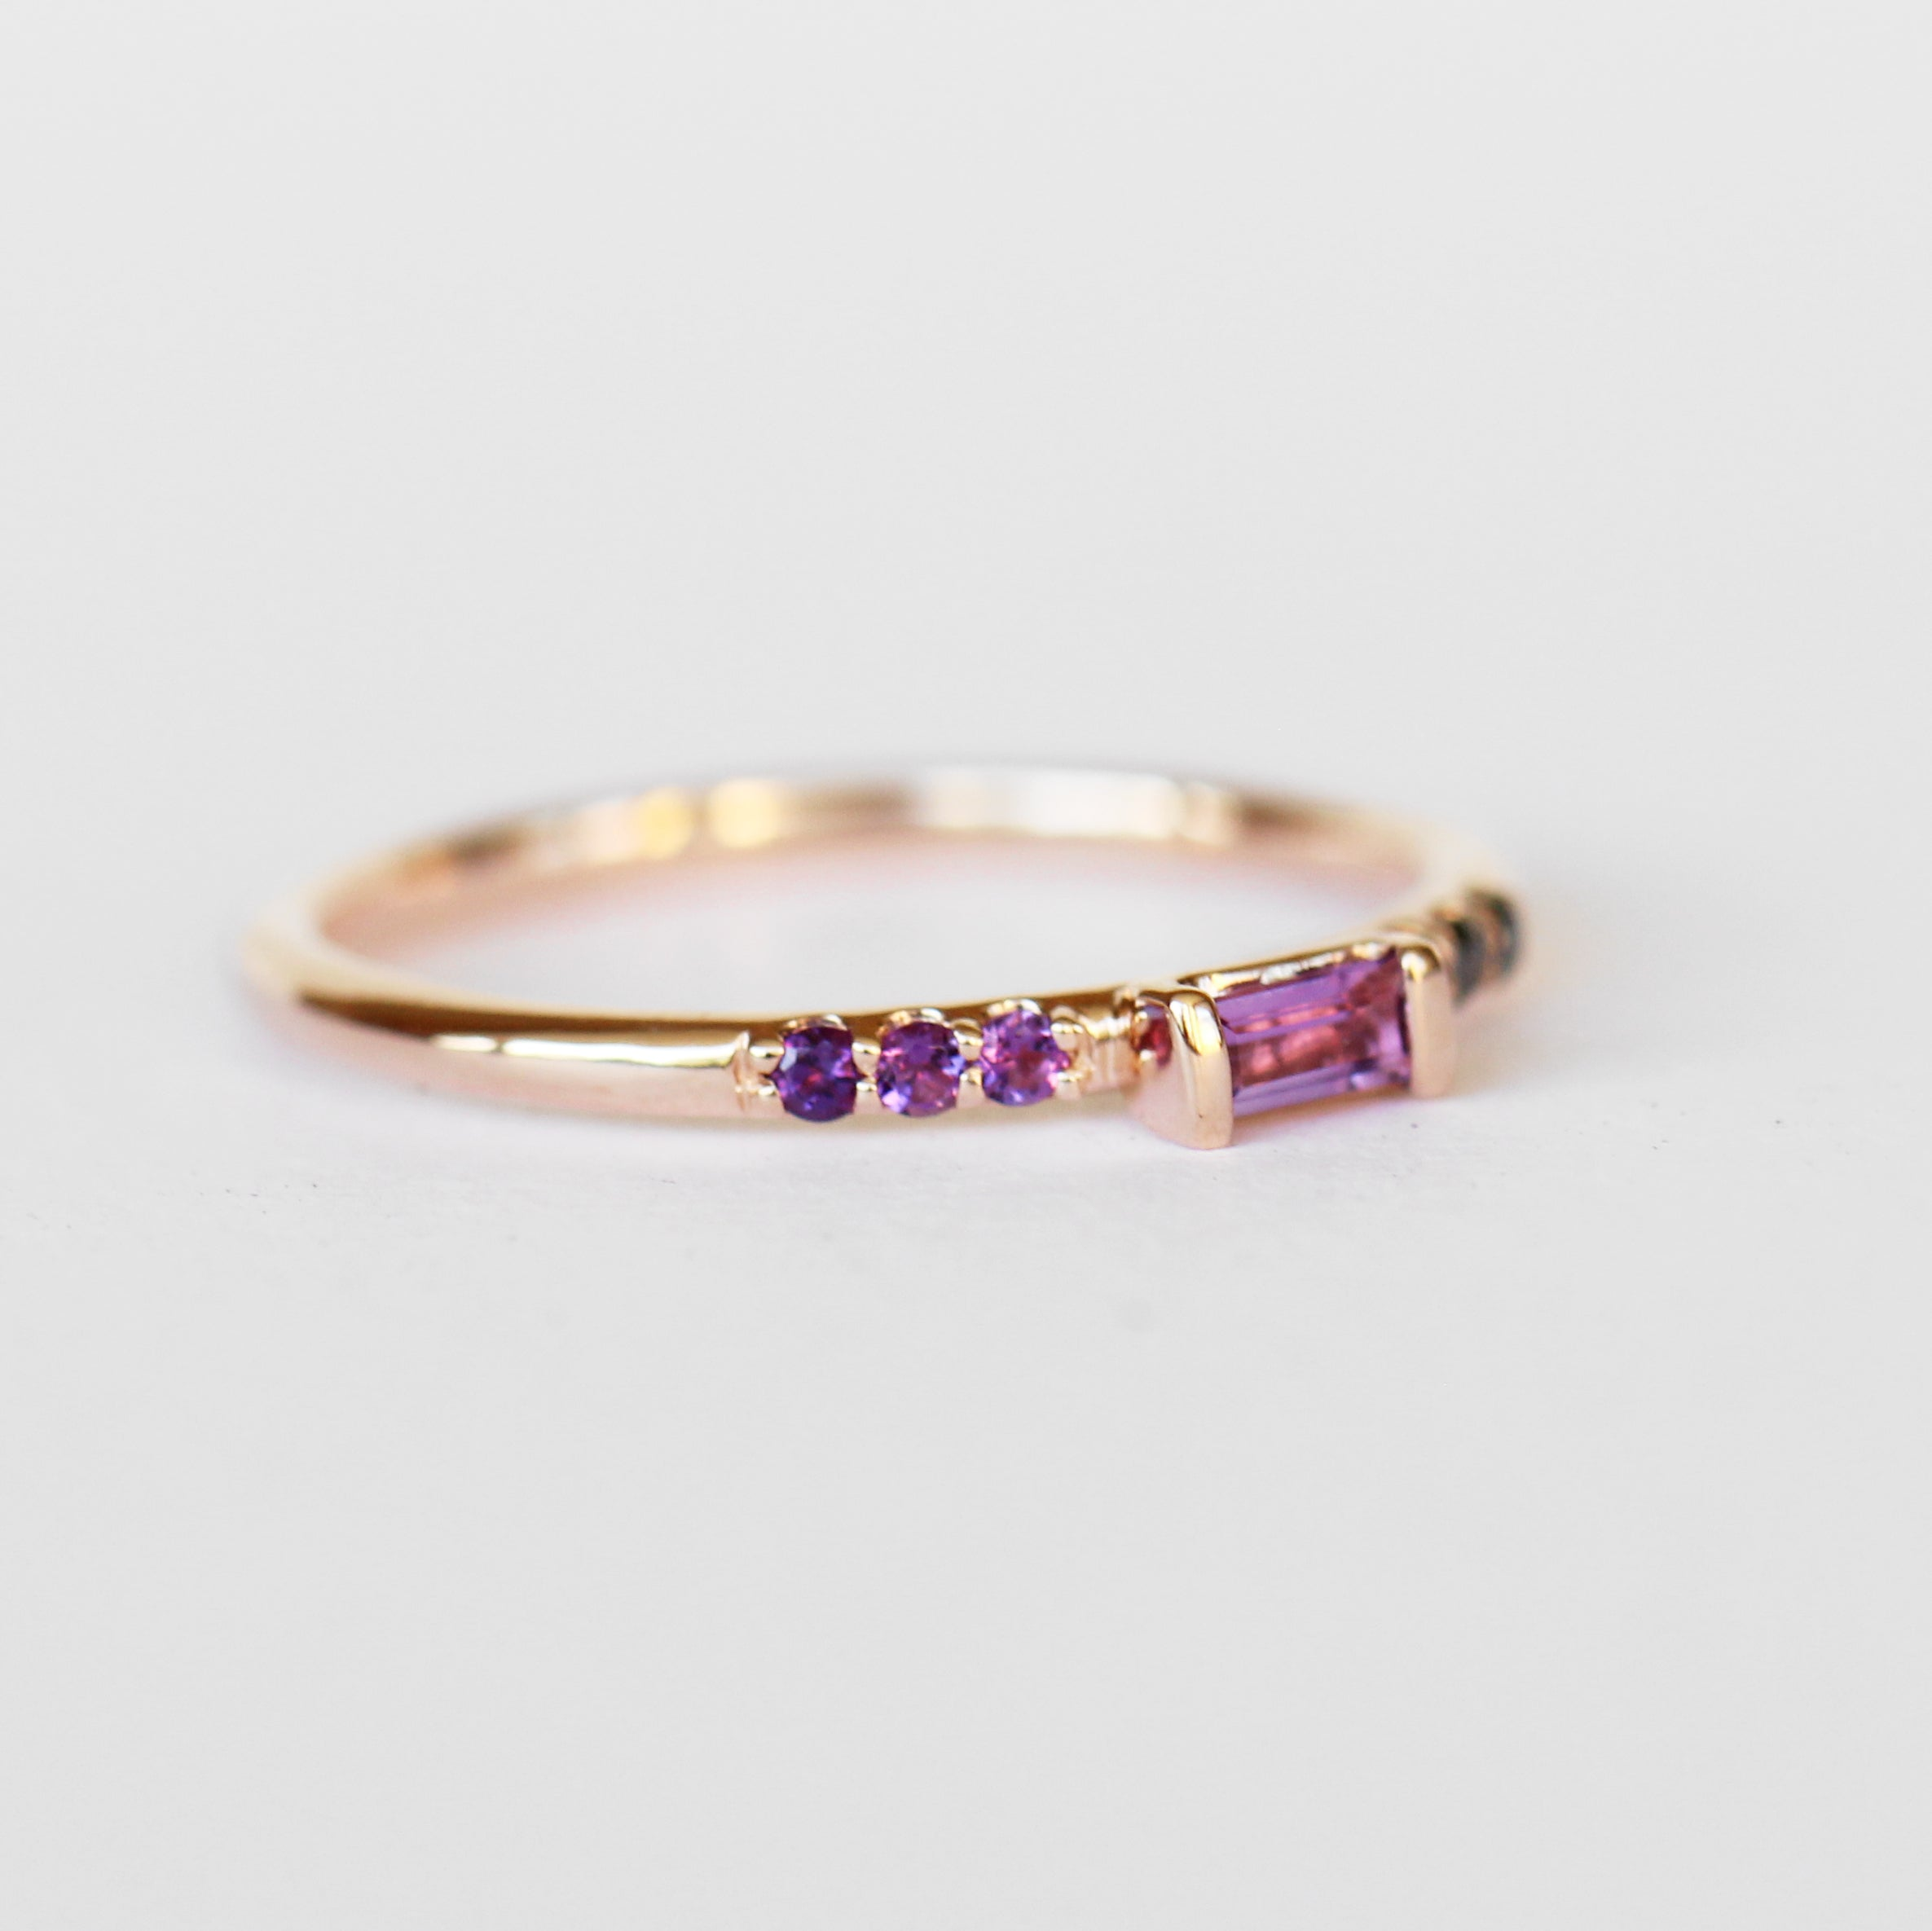 Summer Stacking Ring with Amethyst and Black Diamonds in 10k Rose Gold - Ready to Size and Ship - Midwinter Co. Alternative Bridal Rings and Modern Fine Jewelry